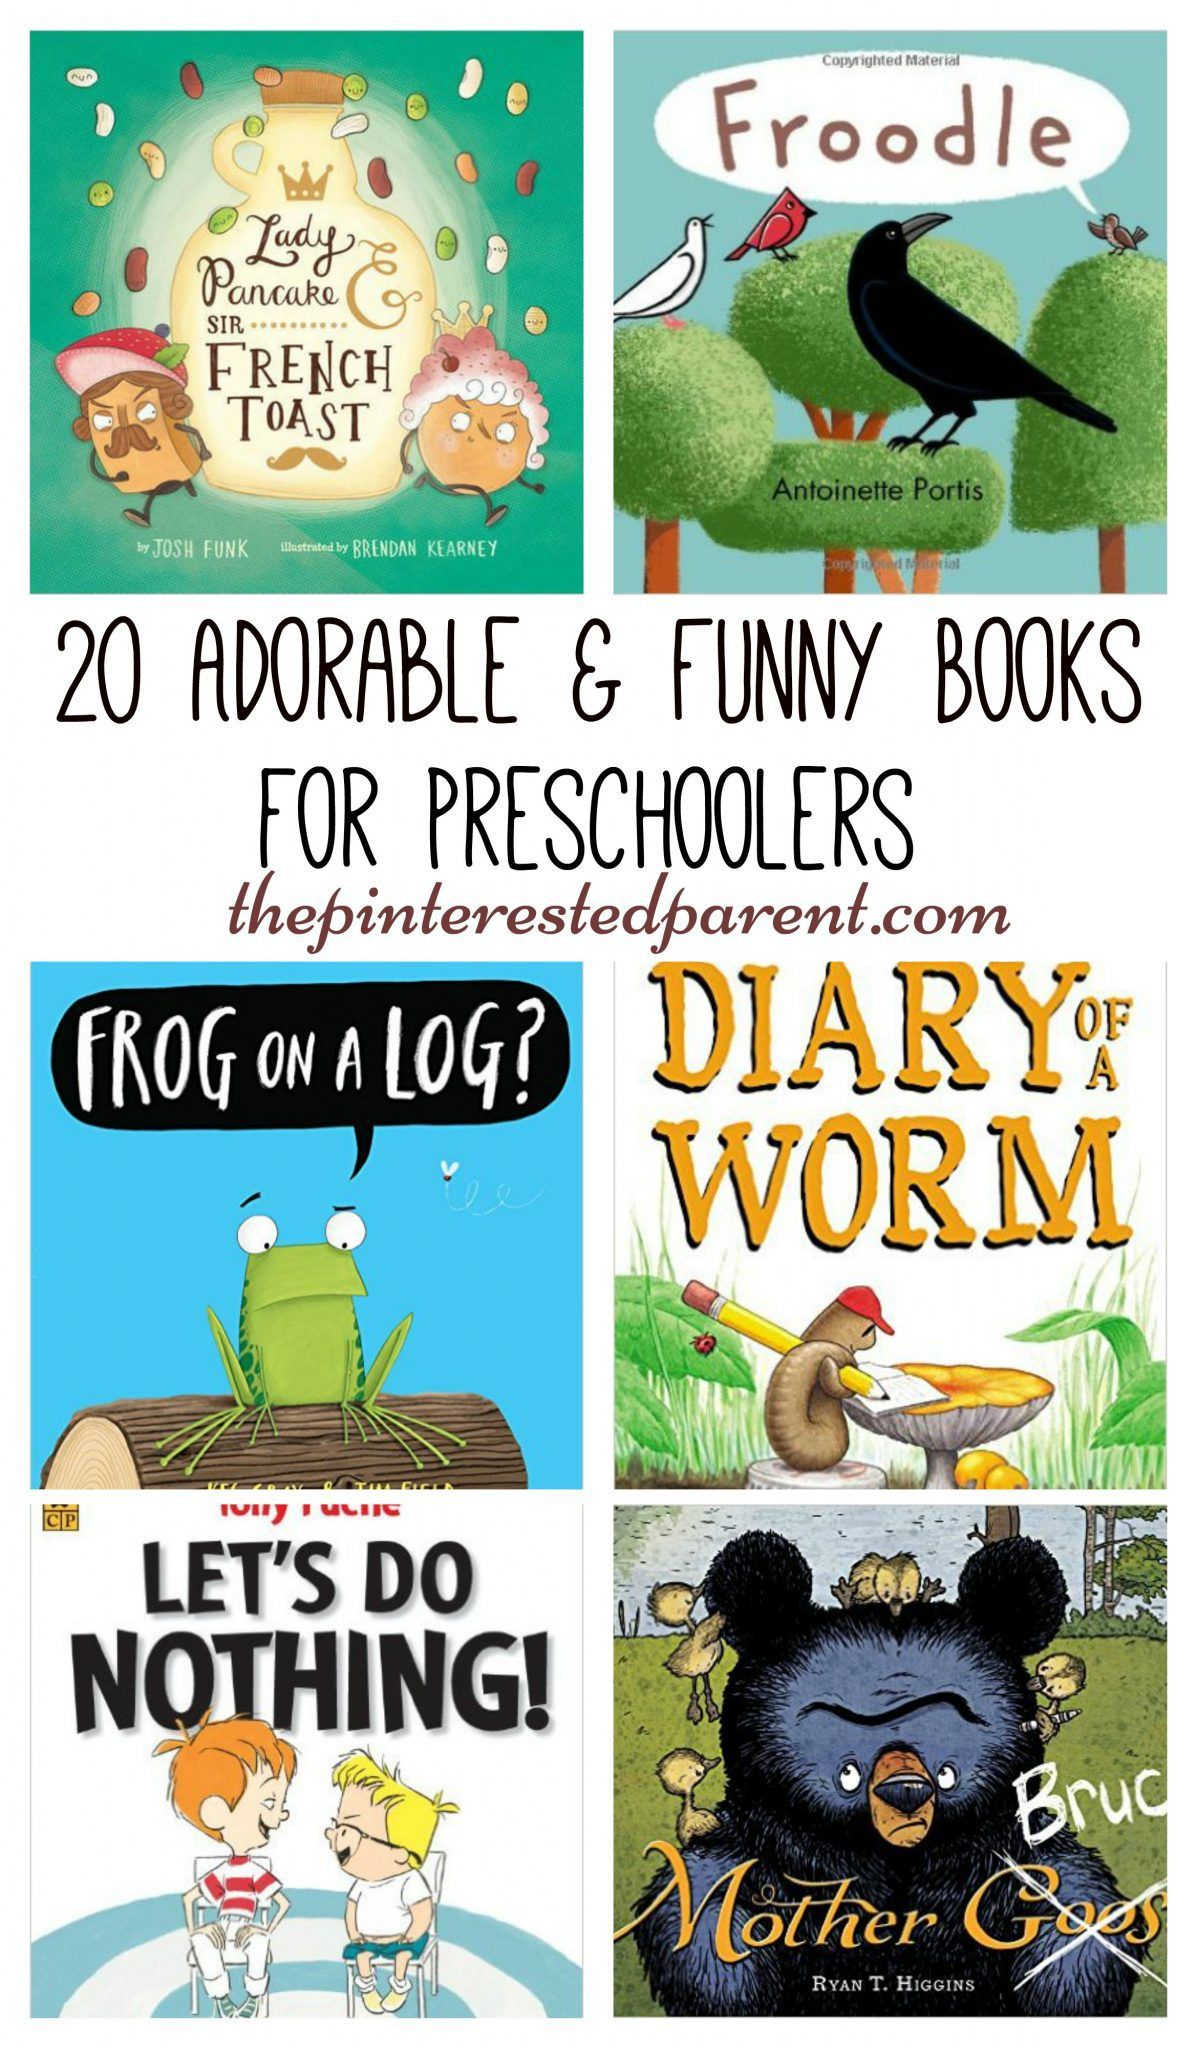 20 laugh out loud Cute and adorable books for preschoolers - funny books for kids to read and laugh.